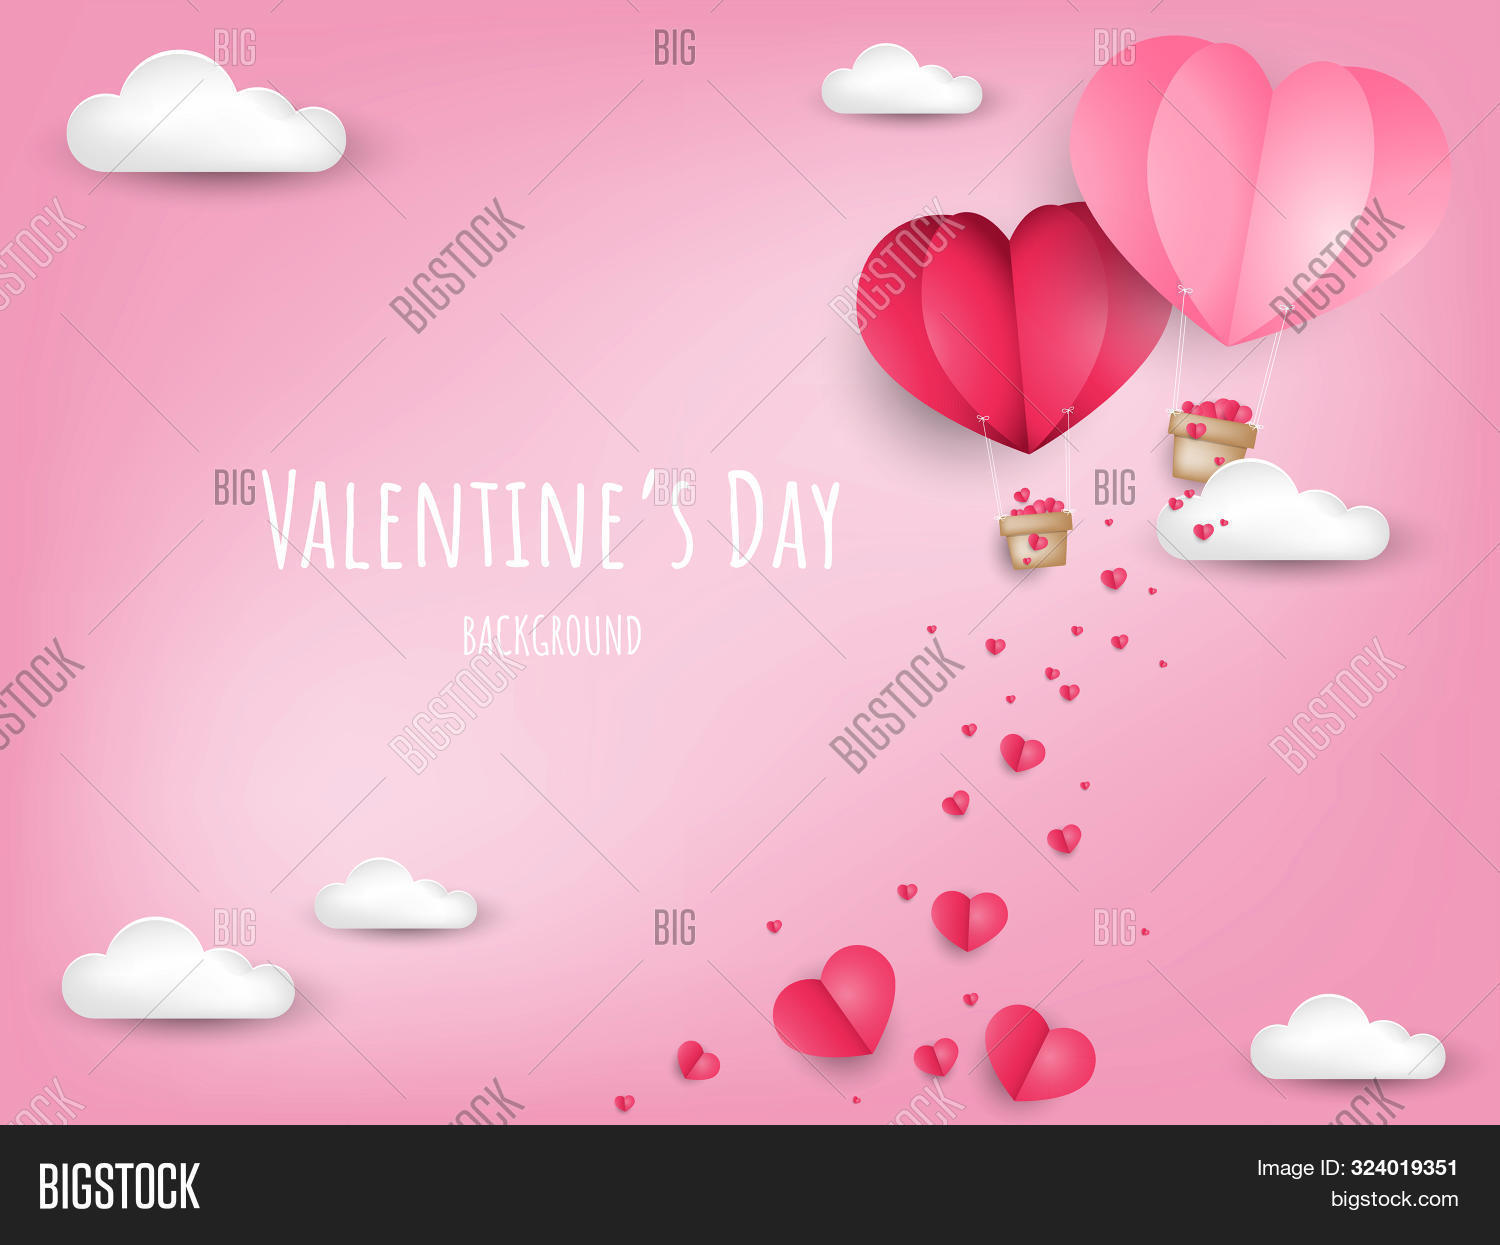 3d,abstract,air,airship,background,balloon,banner,card,celebrate,celebration,color,concept,couple,creative,cut,cute,day,decoration,decorative,design,element,event,february,fly,greeting,happy,heart,holiday,hot,illustration,love,object,paper,pink,realistic,romance,romantic,shape,sign,symbol,text,typography,valentine,vector,wallpaper,wedding